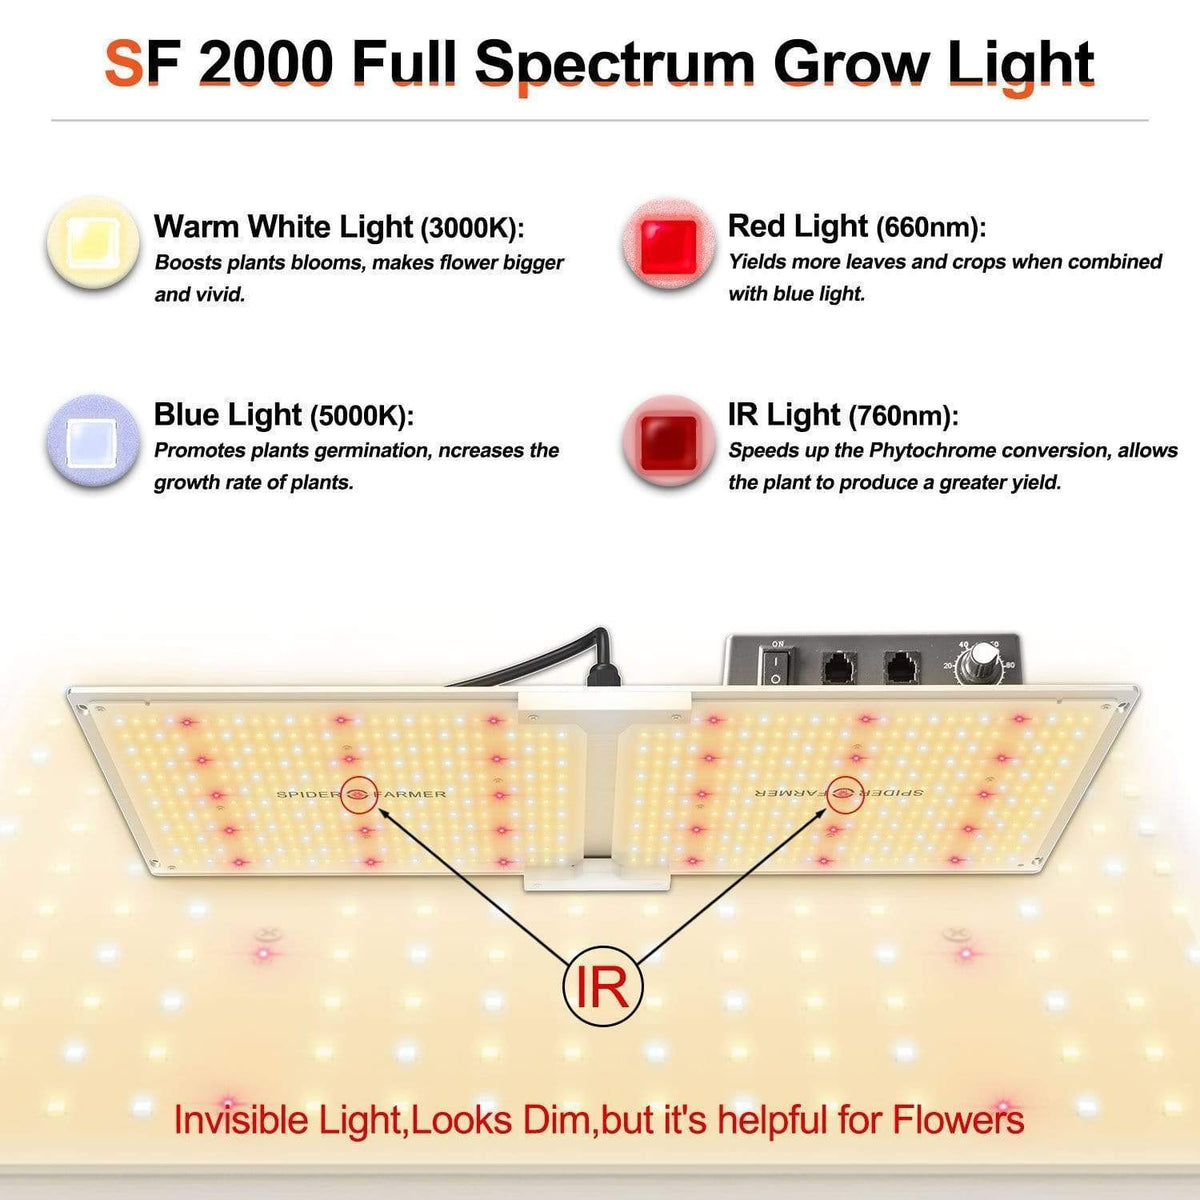 Spider Farmer Spider Farmer SF2000 Dimmable Full Spectrum LED Grow Light